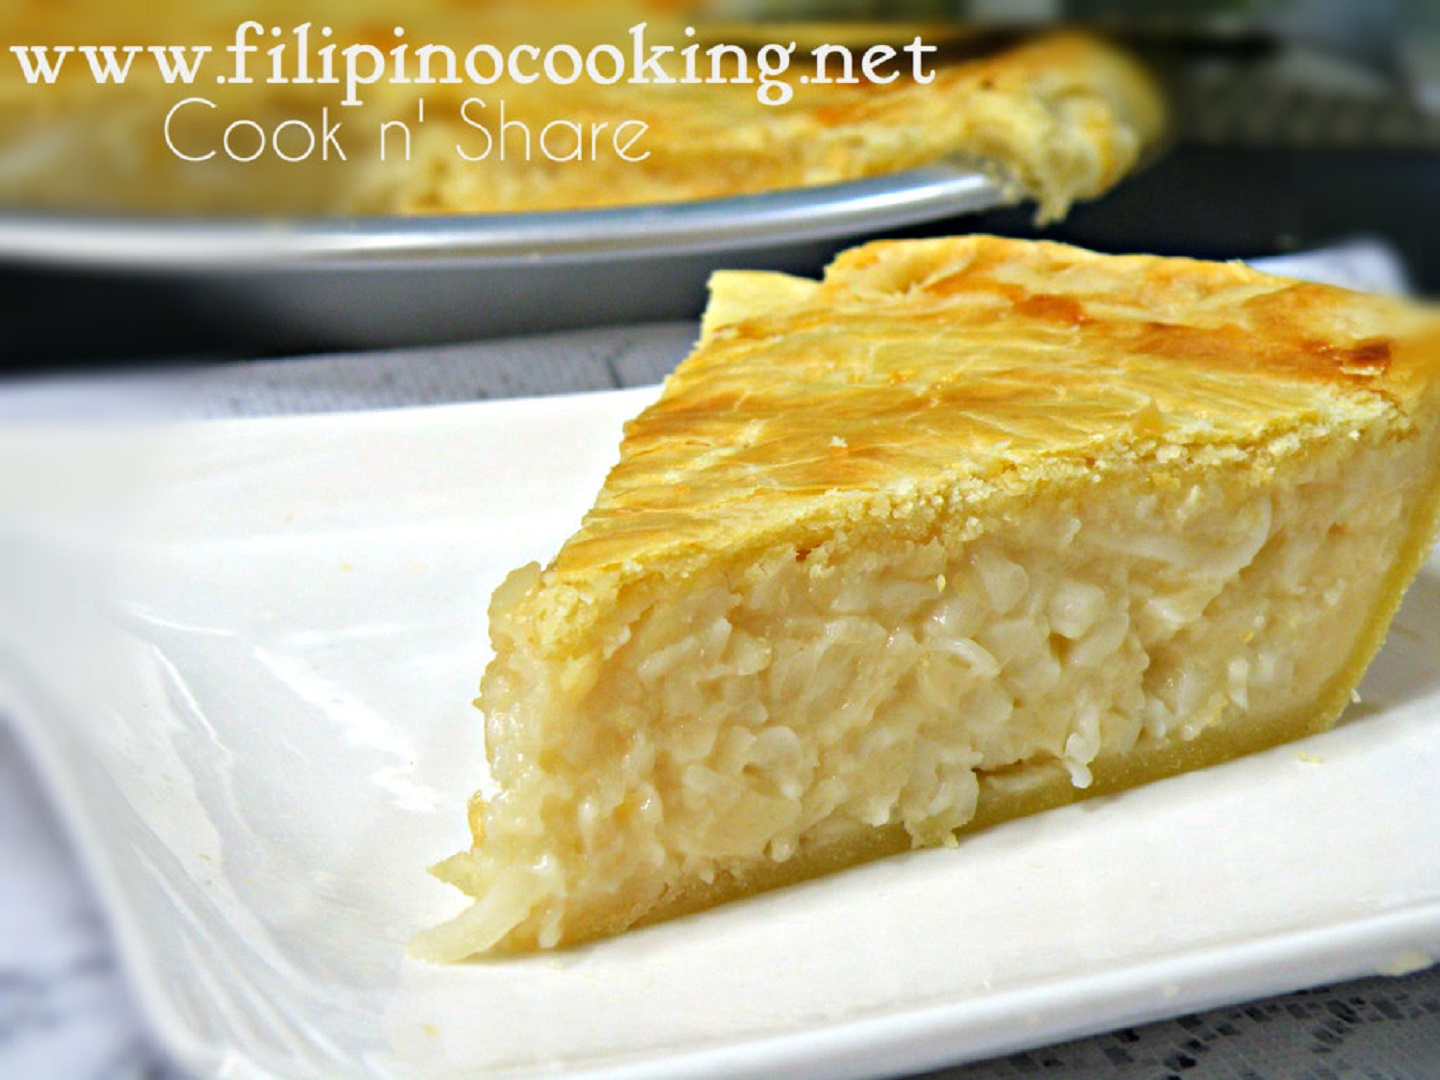 Buko (Coconut) Pie